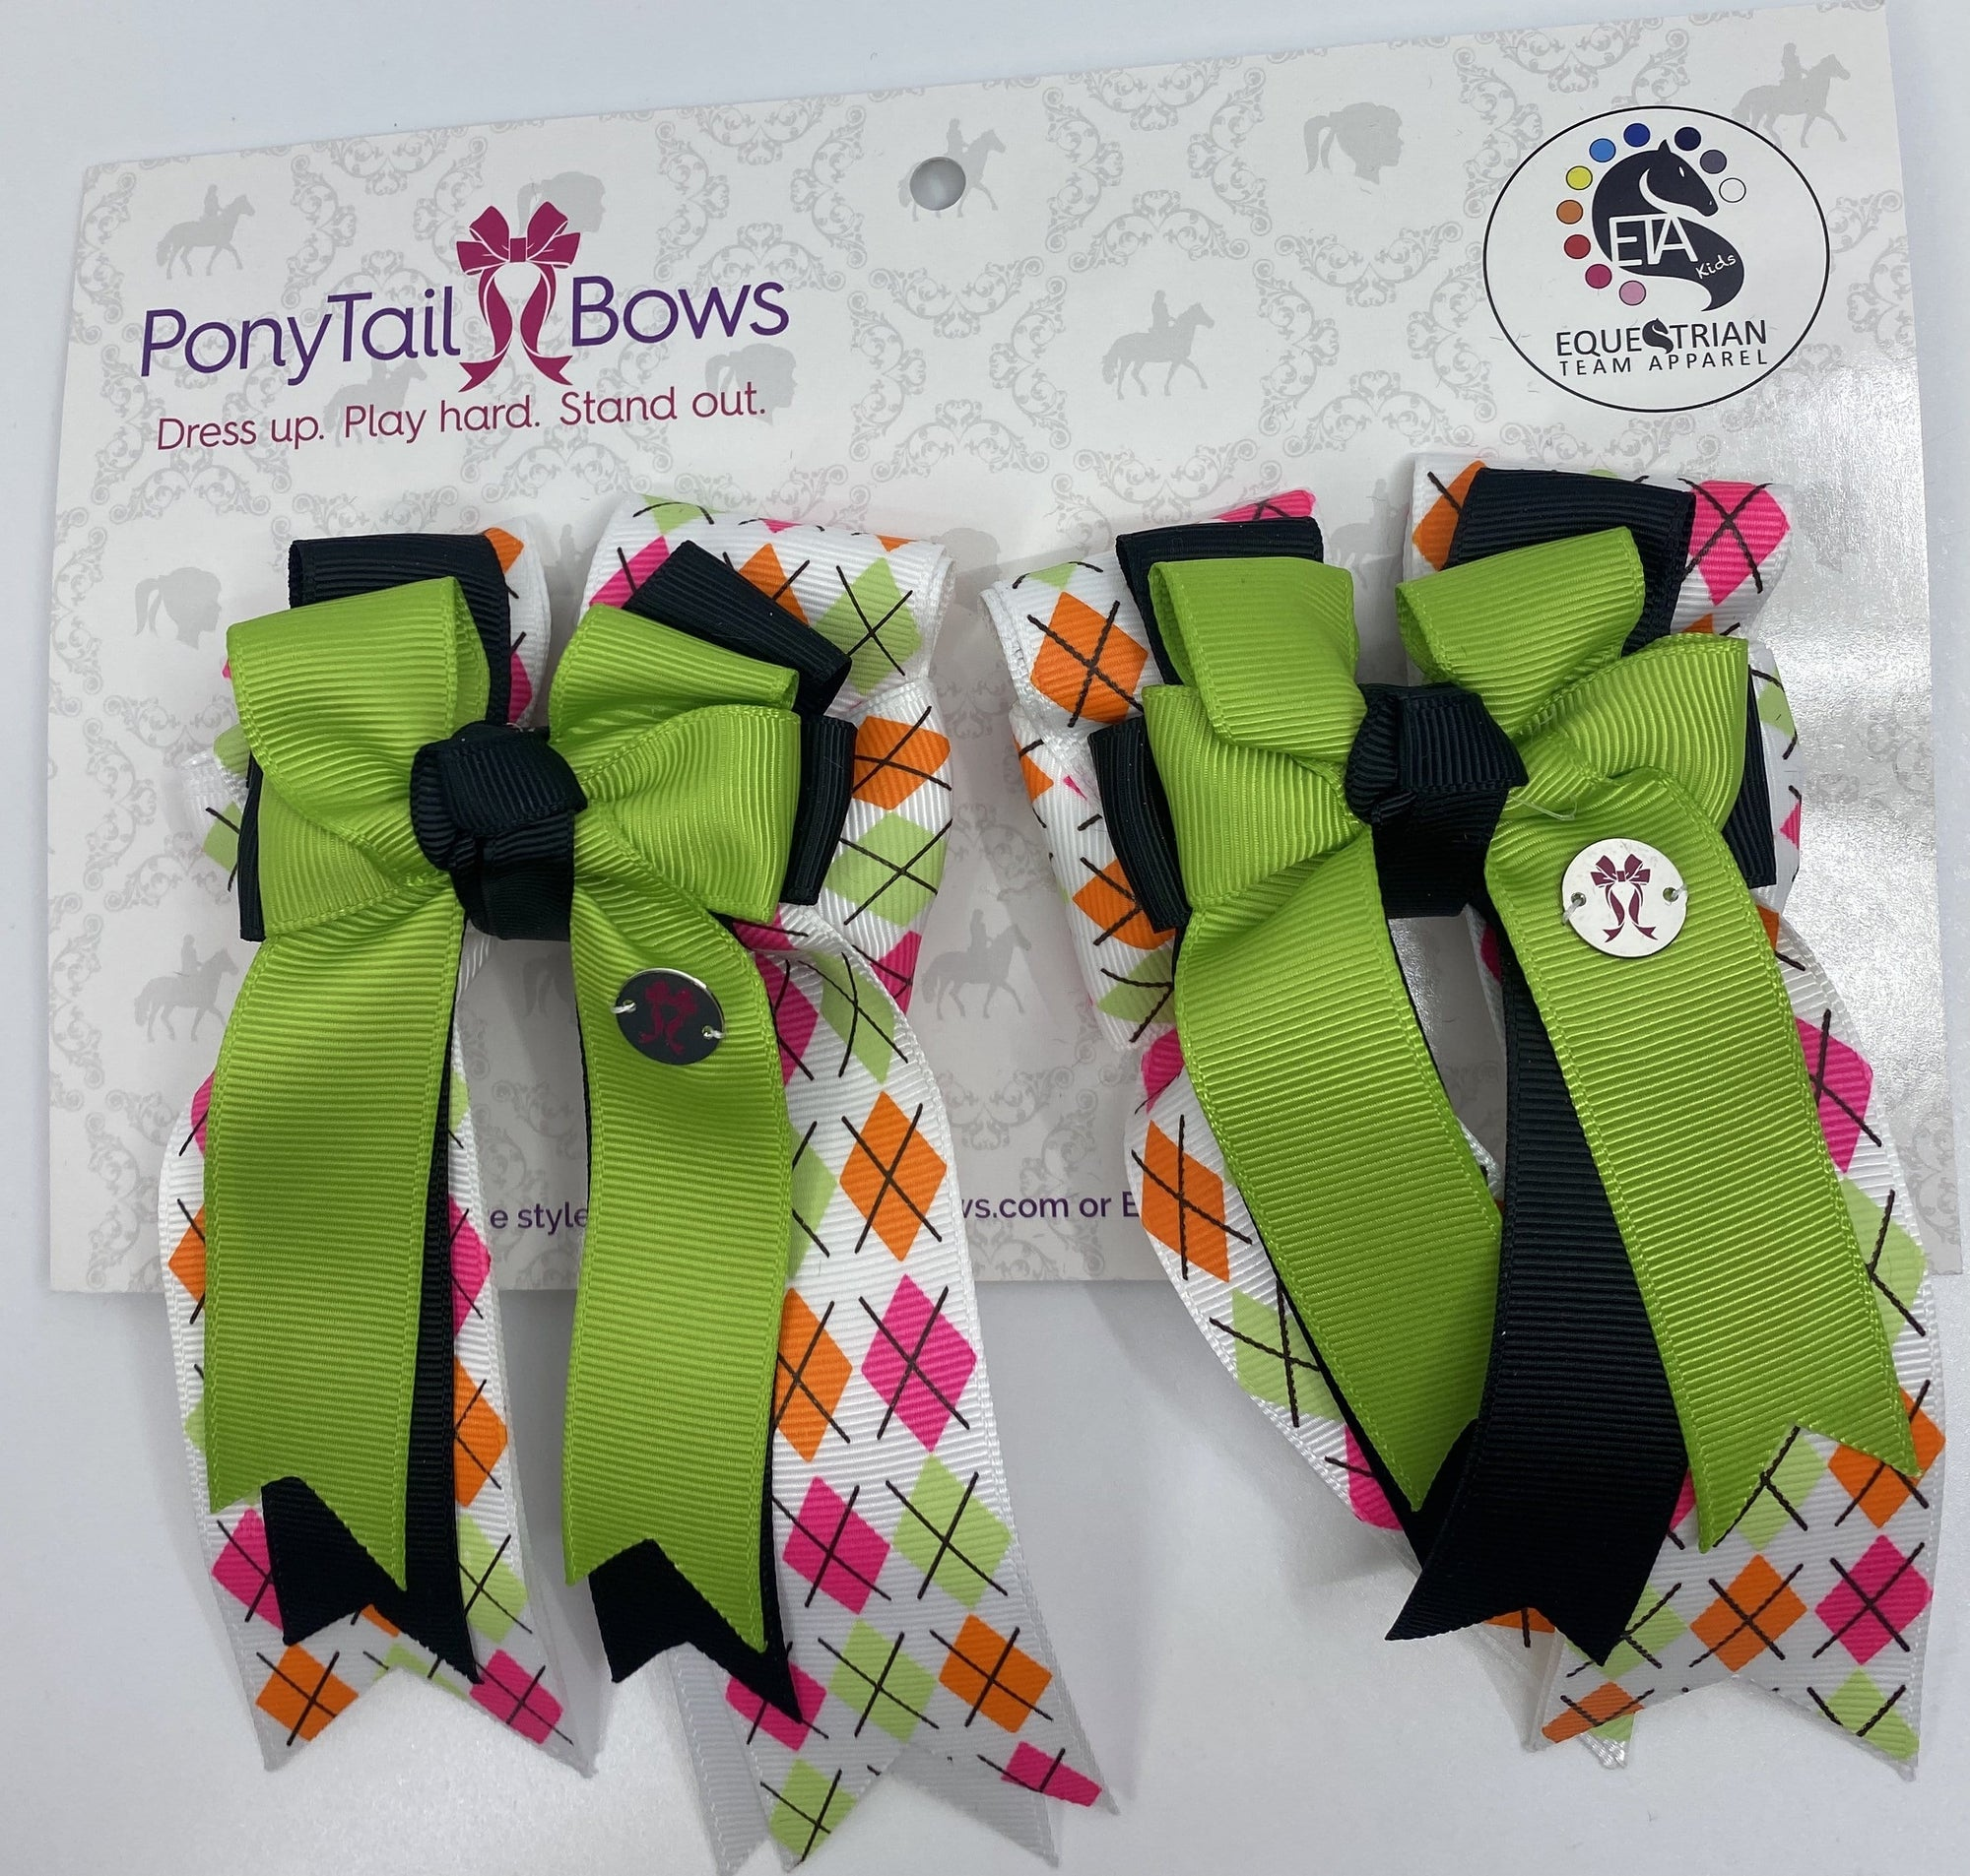 "PonyTail Bows 3"" Tails Argyle Lime/Black PonyTail Bows equestrian team apparel online tack store mobile tack store custom farm apparel custom show stable clothing equestrian lifestyle horse show clothing riding clothes PonyTail Bows 